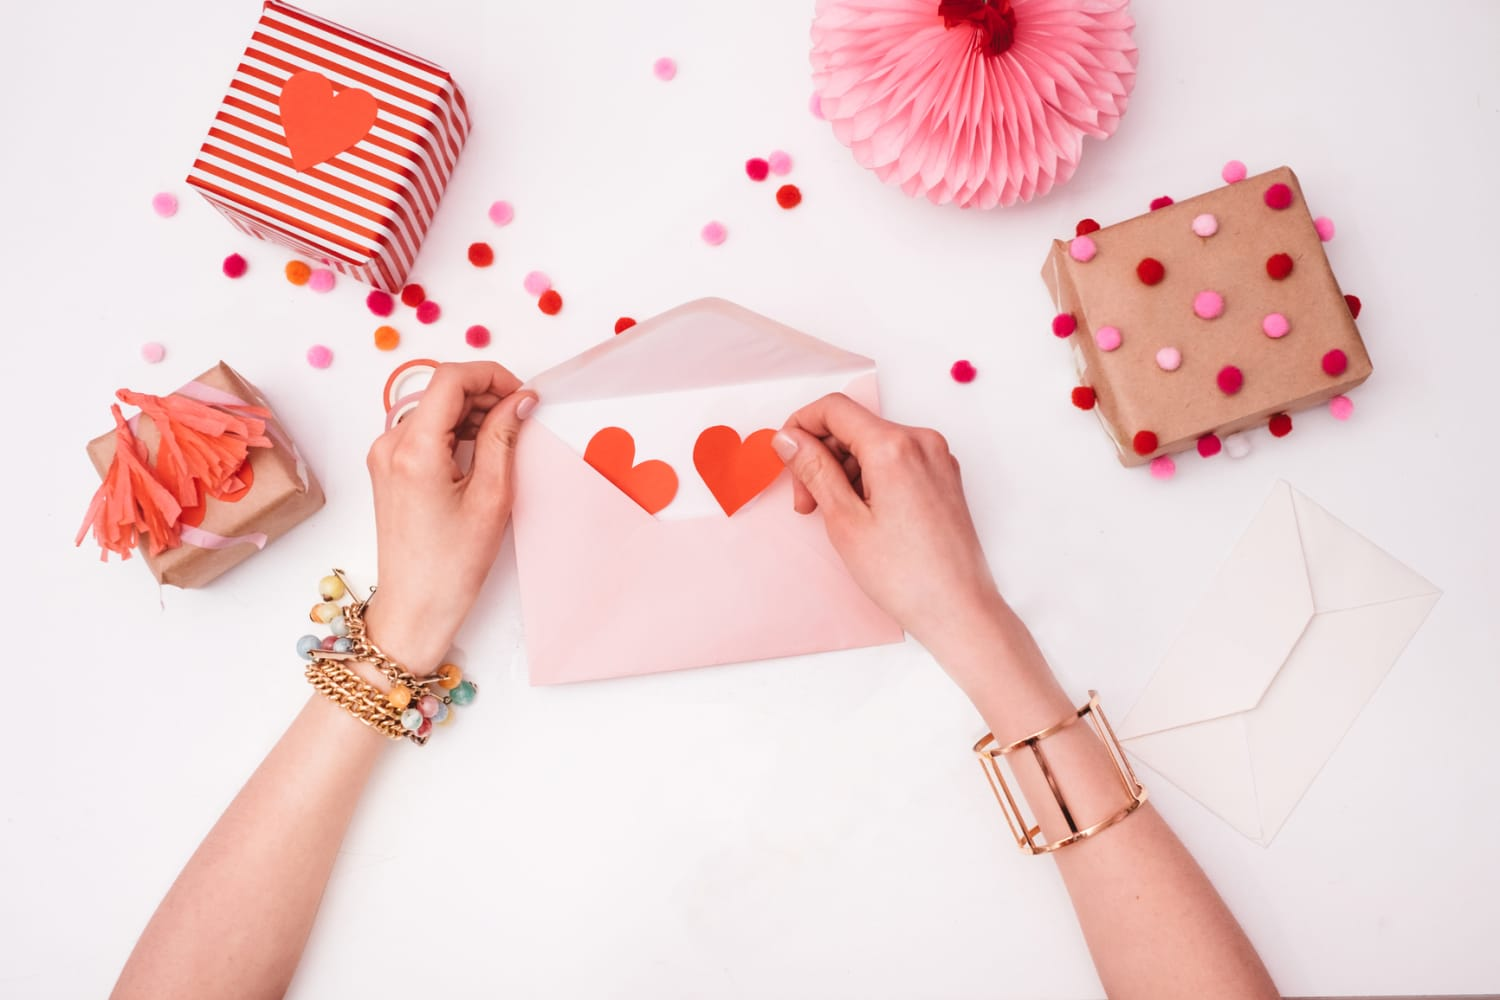 The Best Non-Cheesy Valentine's Day Gifts (According to a Newly Single Person)